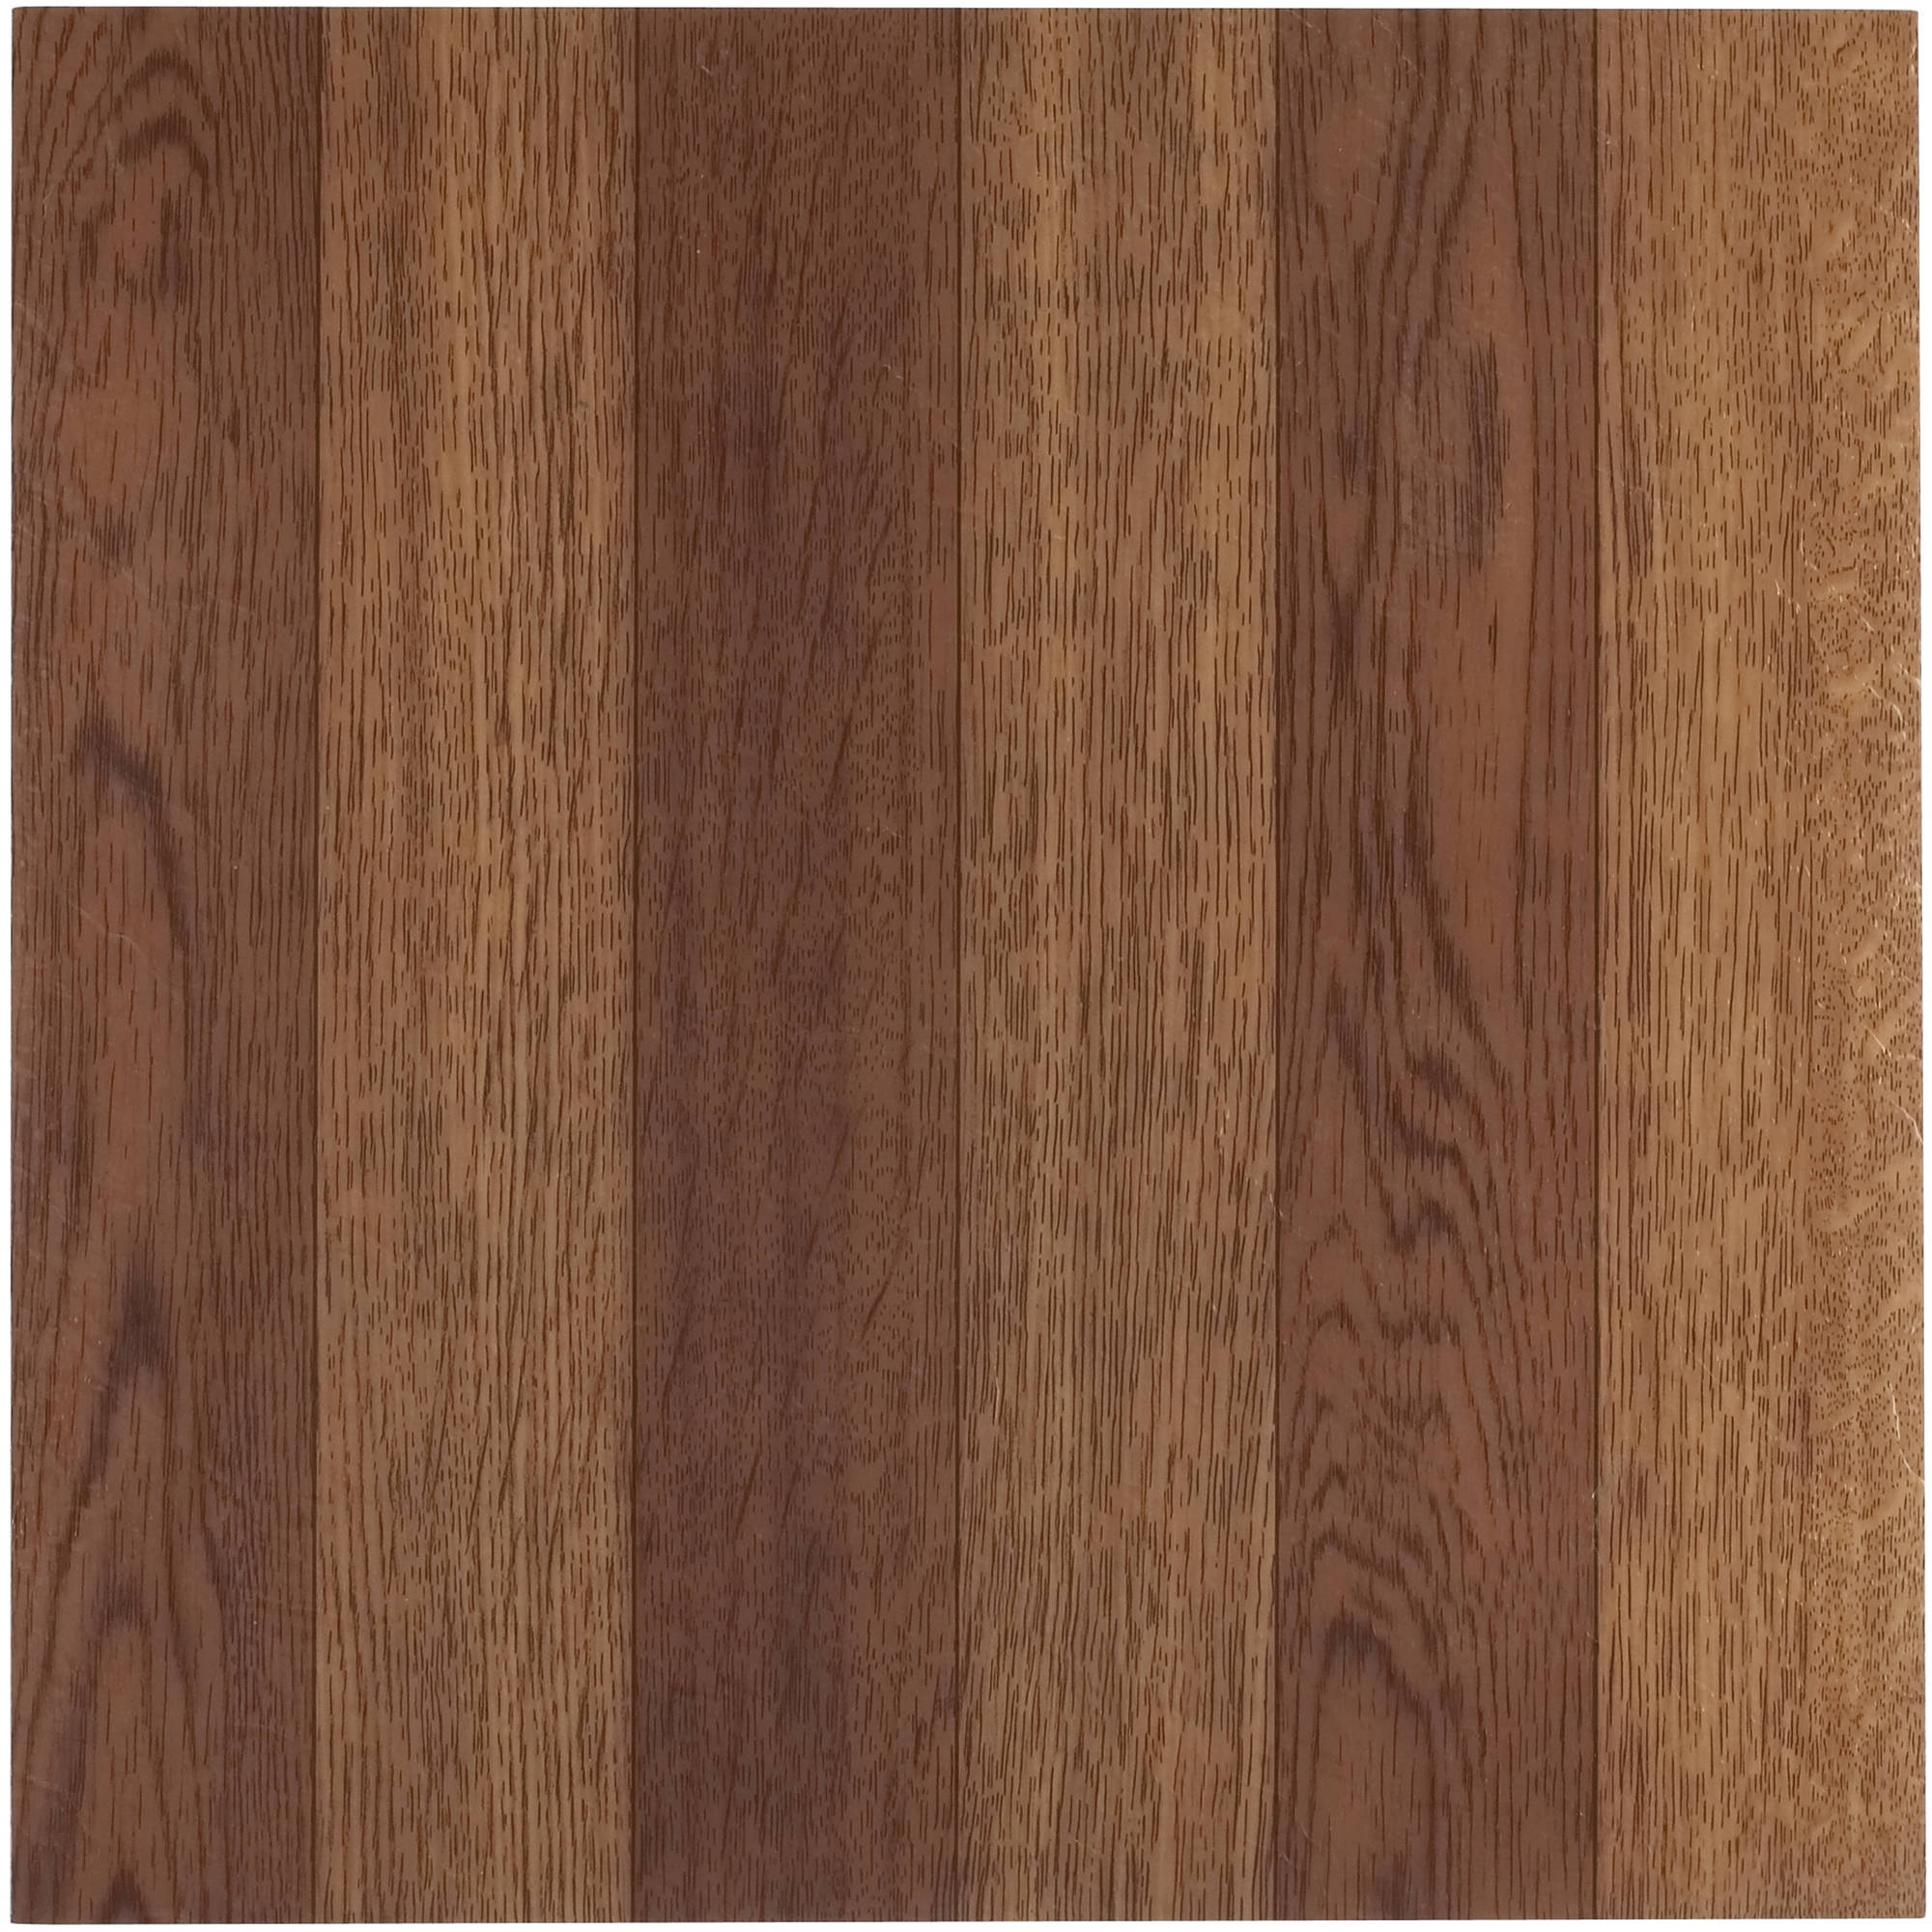 tivoli medium oak planklook 12x12 self adhesive vinyl floor tile 45 tiles